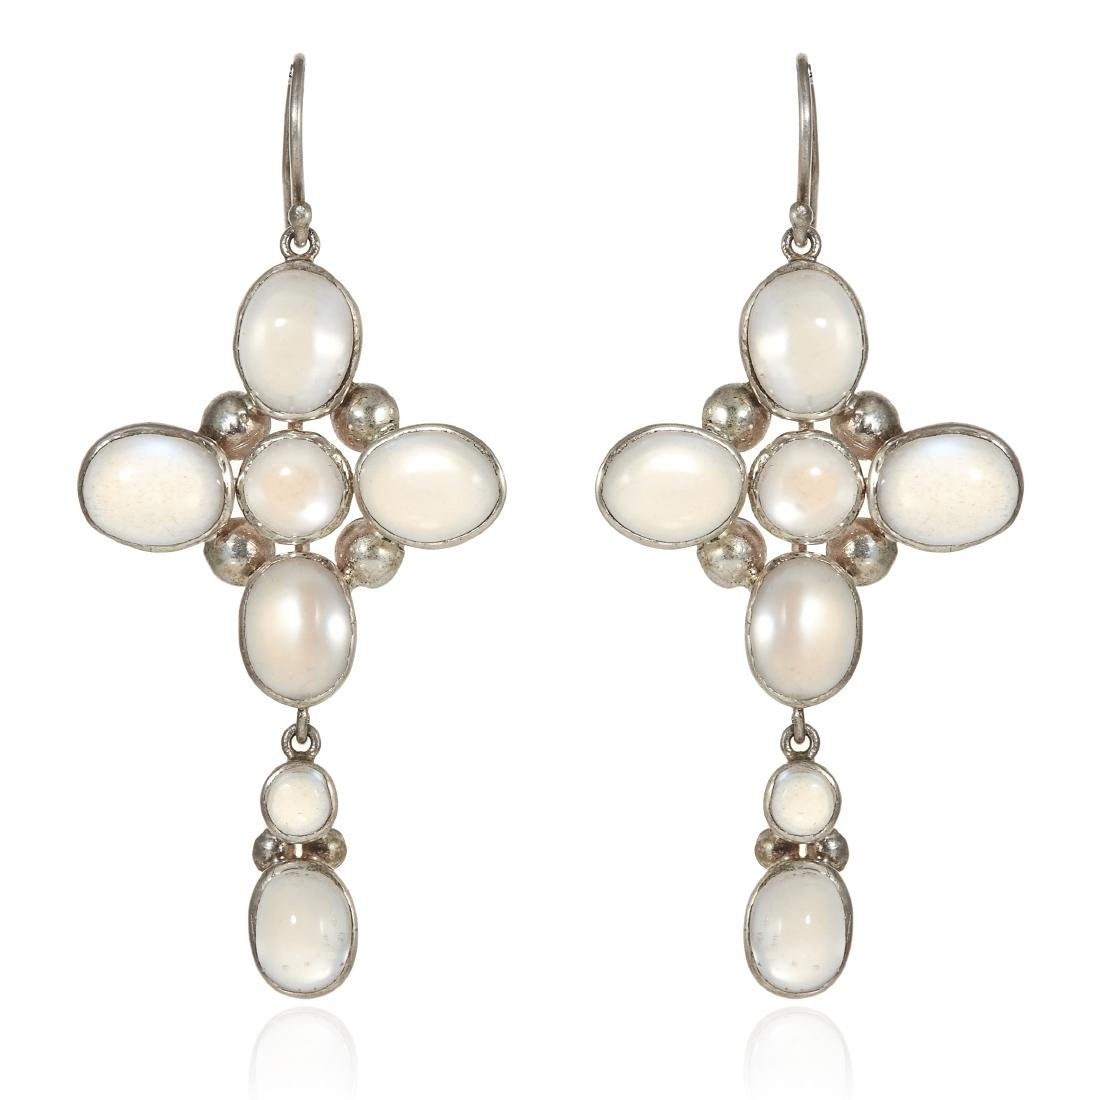 A PAIR OF MOONSTONE CROSS EARRINGS in sterling silver,